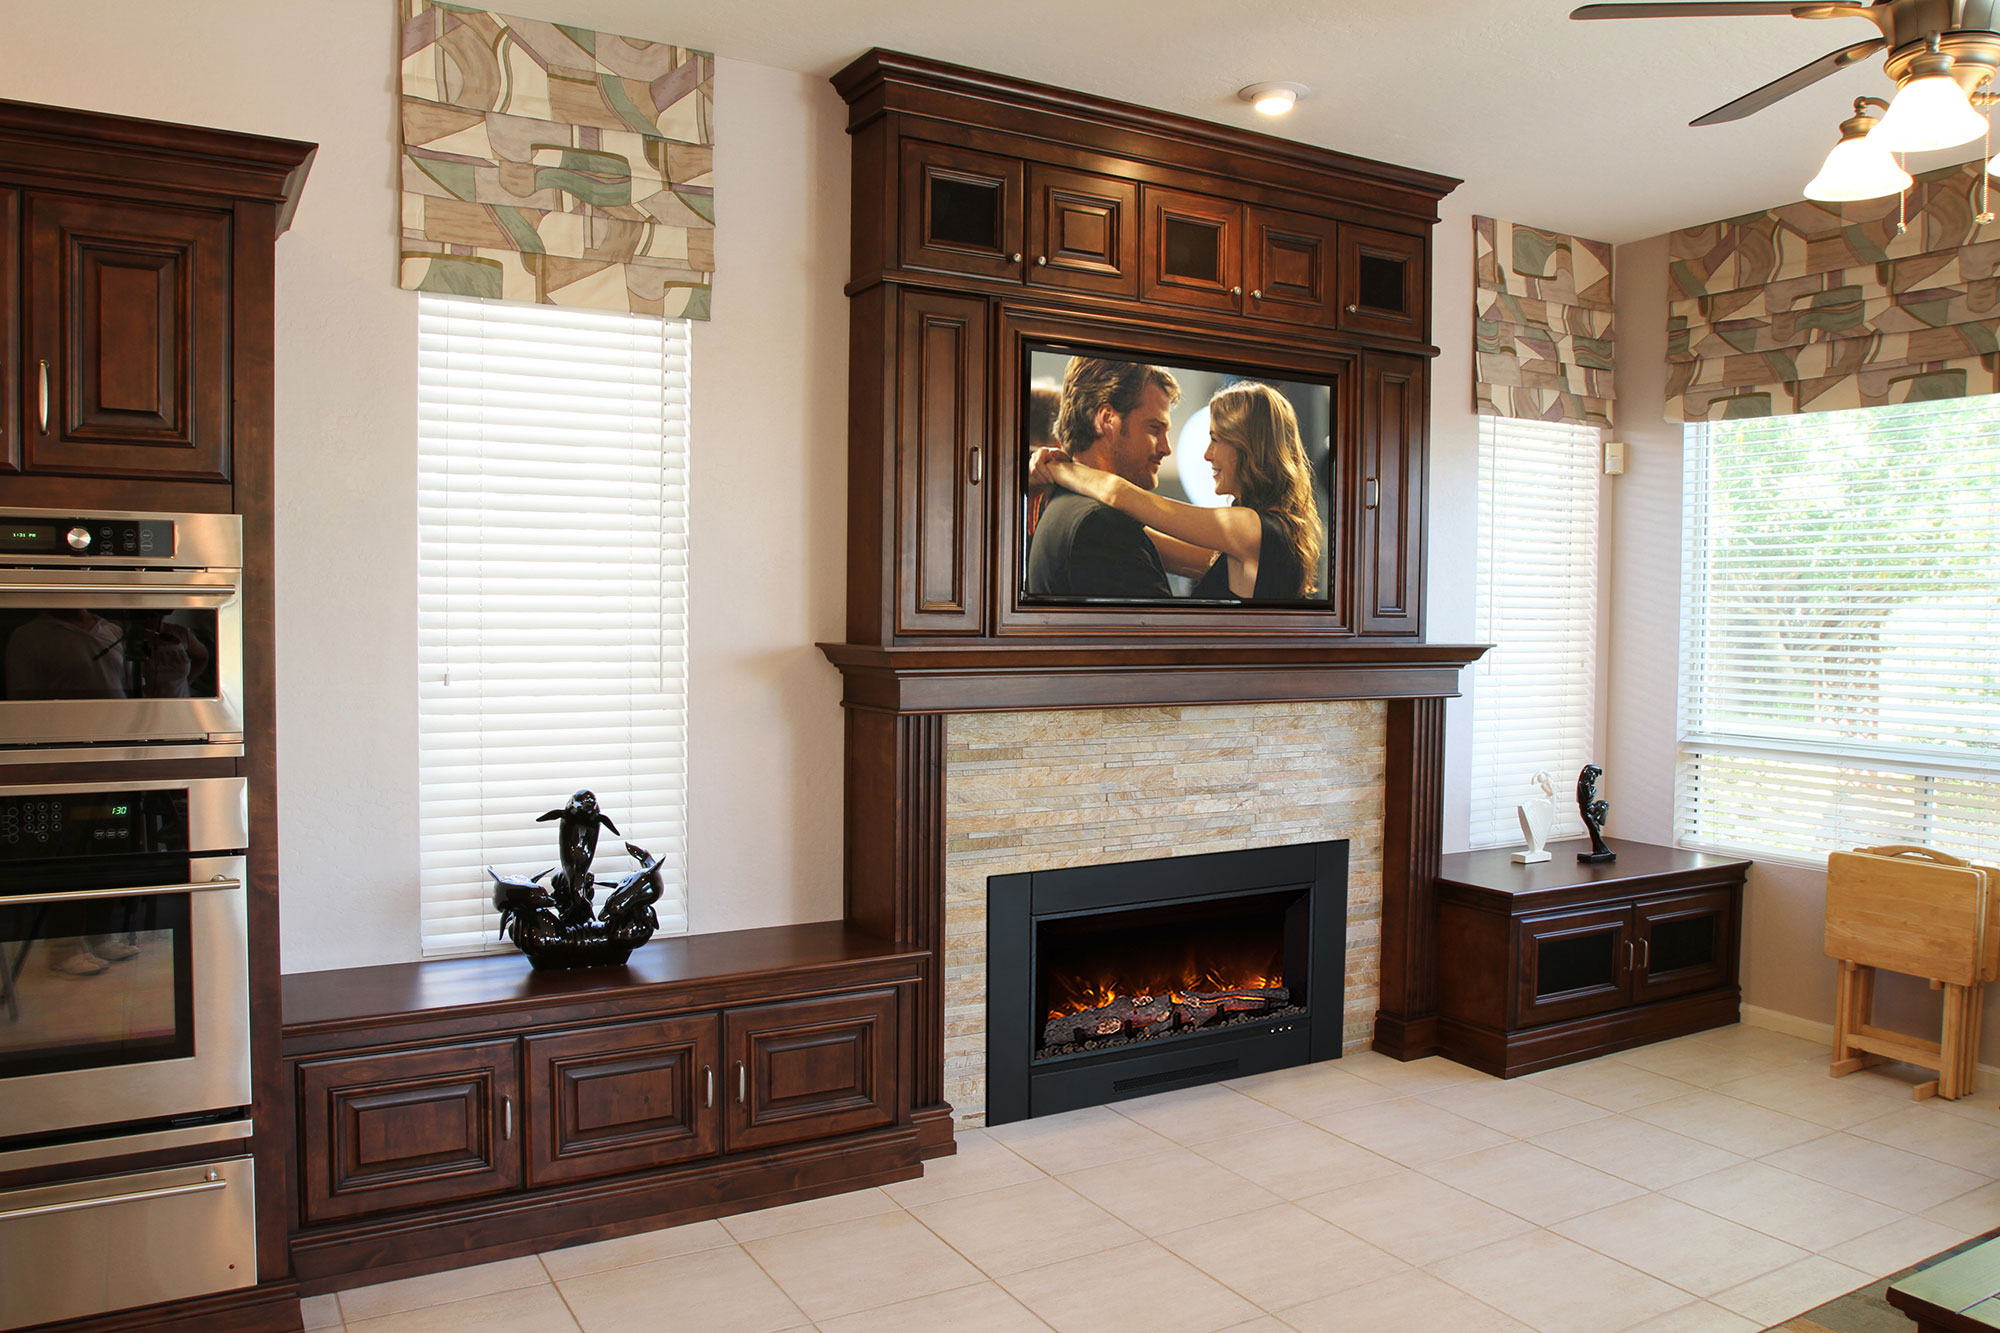 Electric Fireplace.com Electric Fireplace With Mantel How To Find The Perfect One